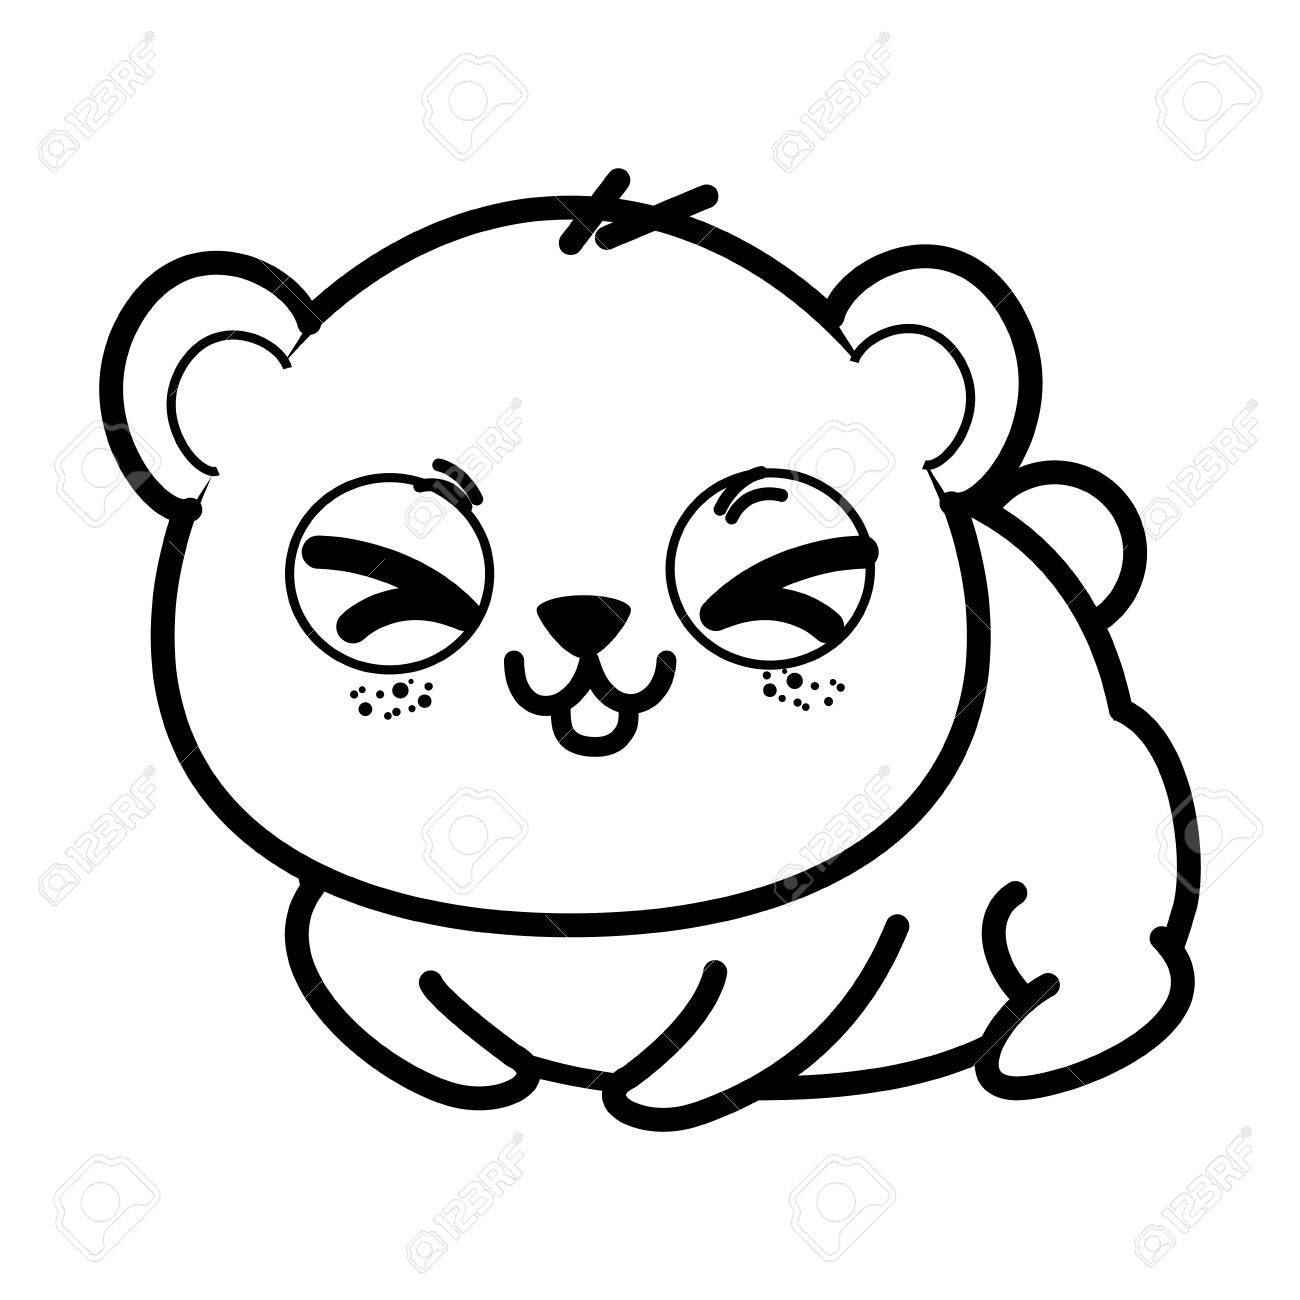 1300x1300 Isolated Cute Panda Bear Icon Vector Illustration Graphic Design